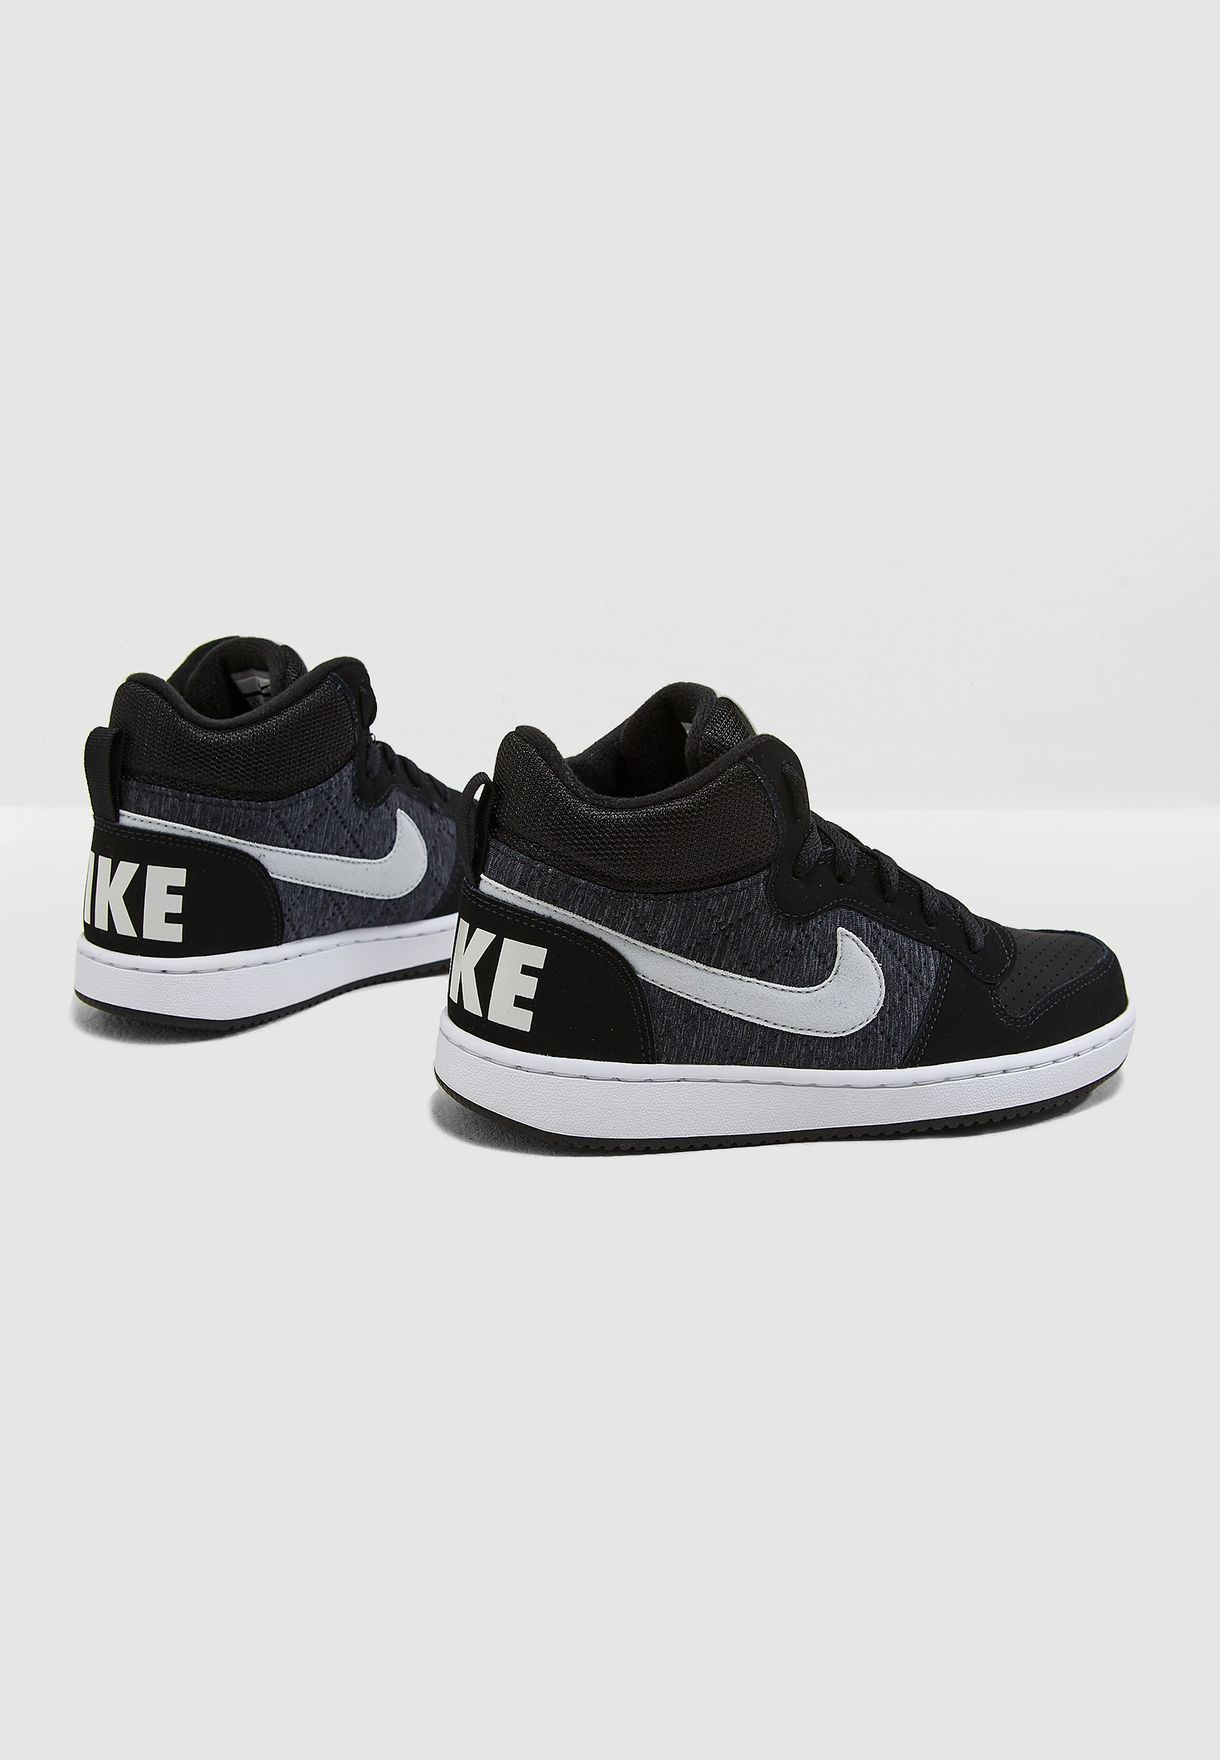 17490a4c397 Shop Nike black Youth Court Borough Mid SE 918340-007 for Kids in ...